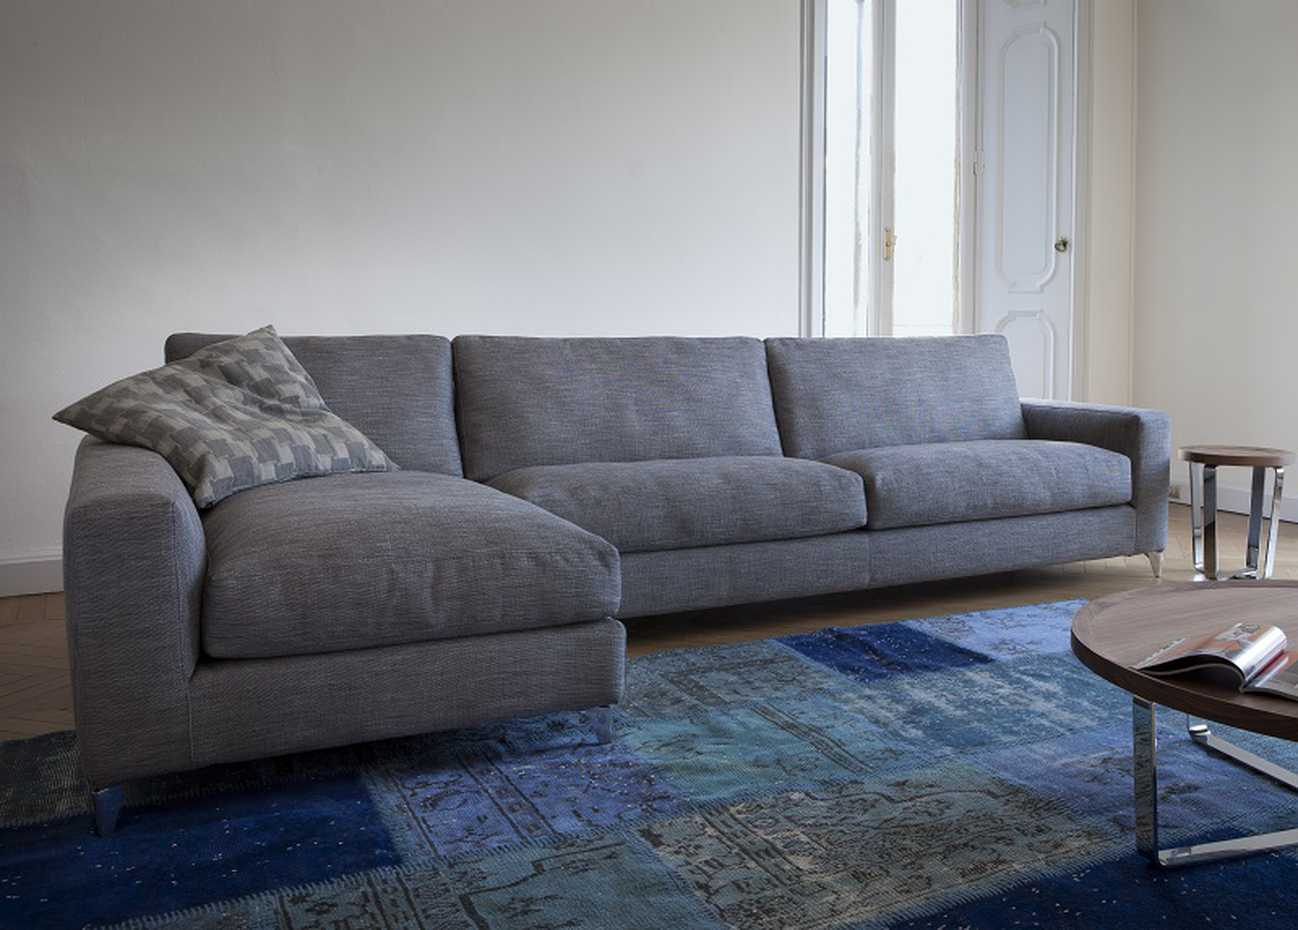 Zone Comfort by Vibieffe product image 7